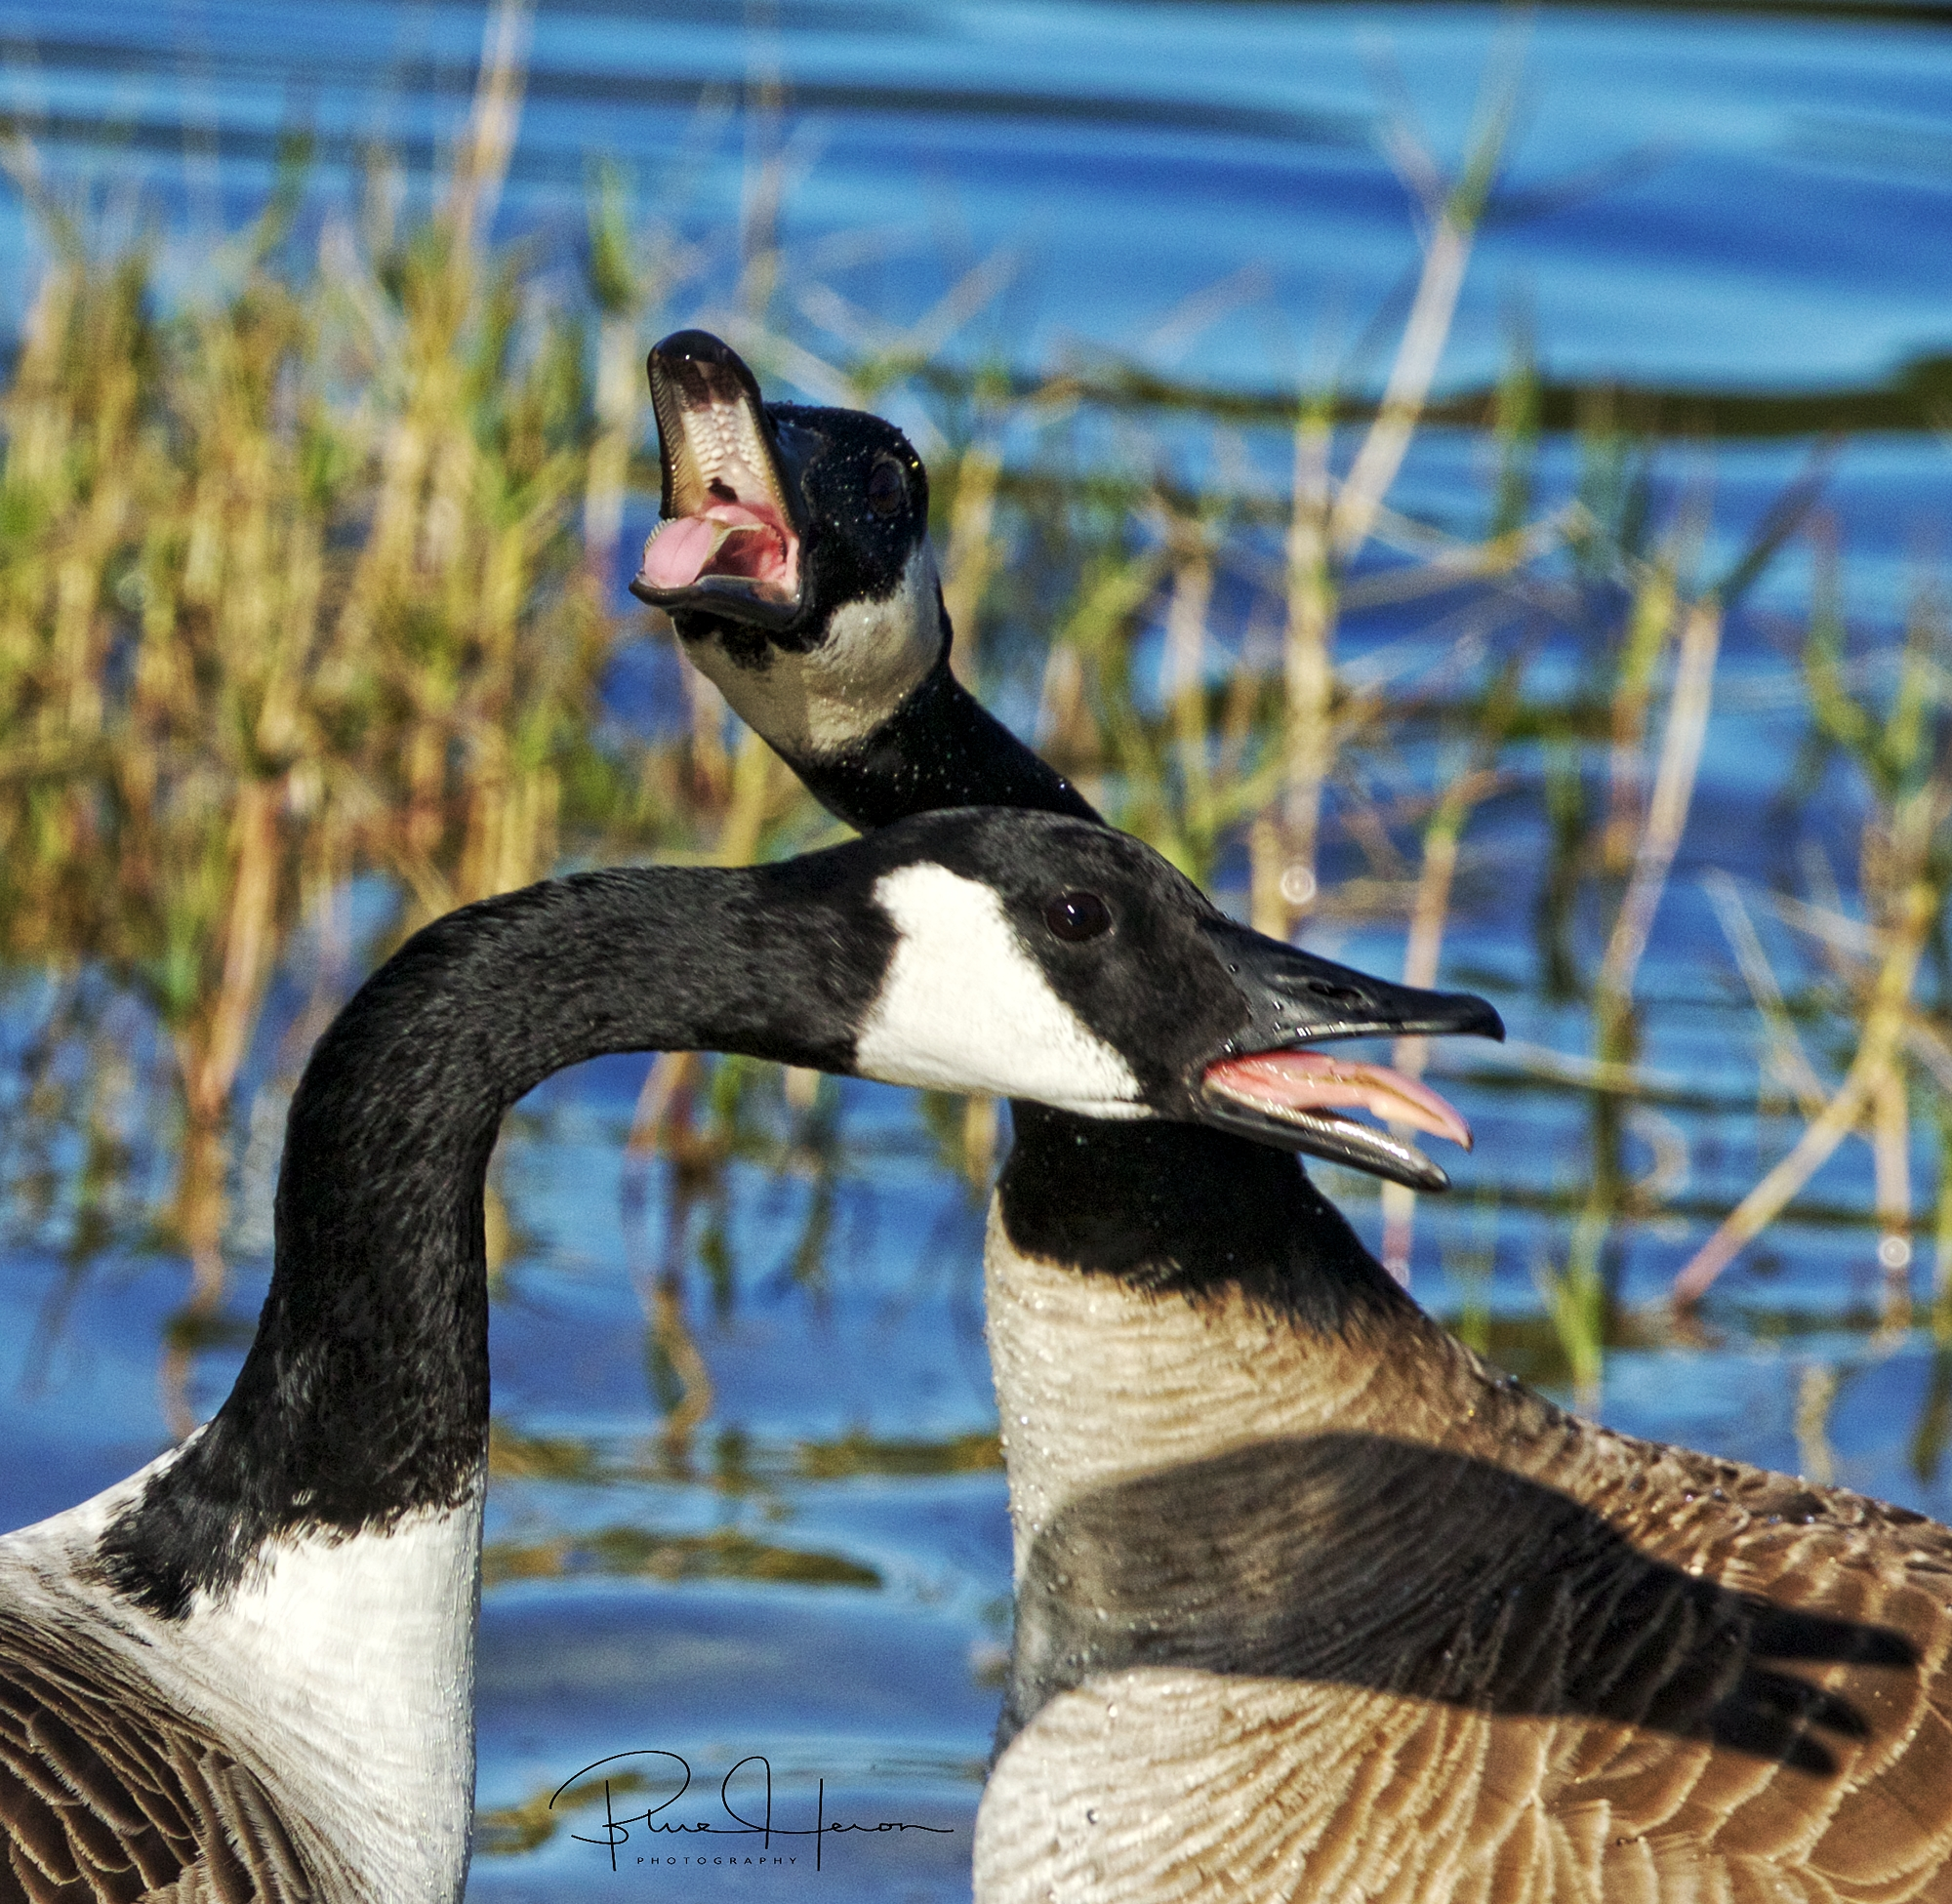 Well Your Moma has duck feet! Honk Honk my tail feathers